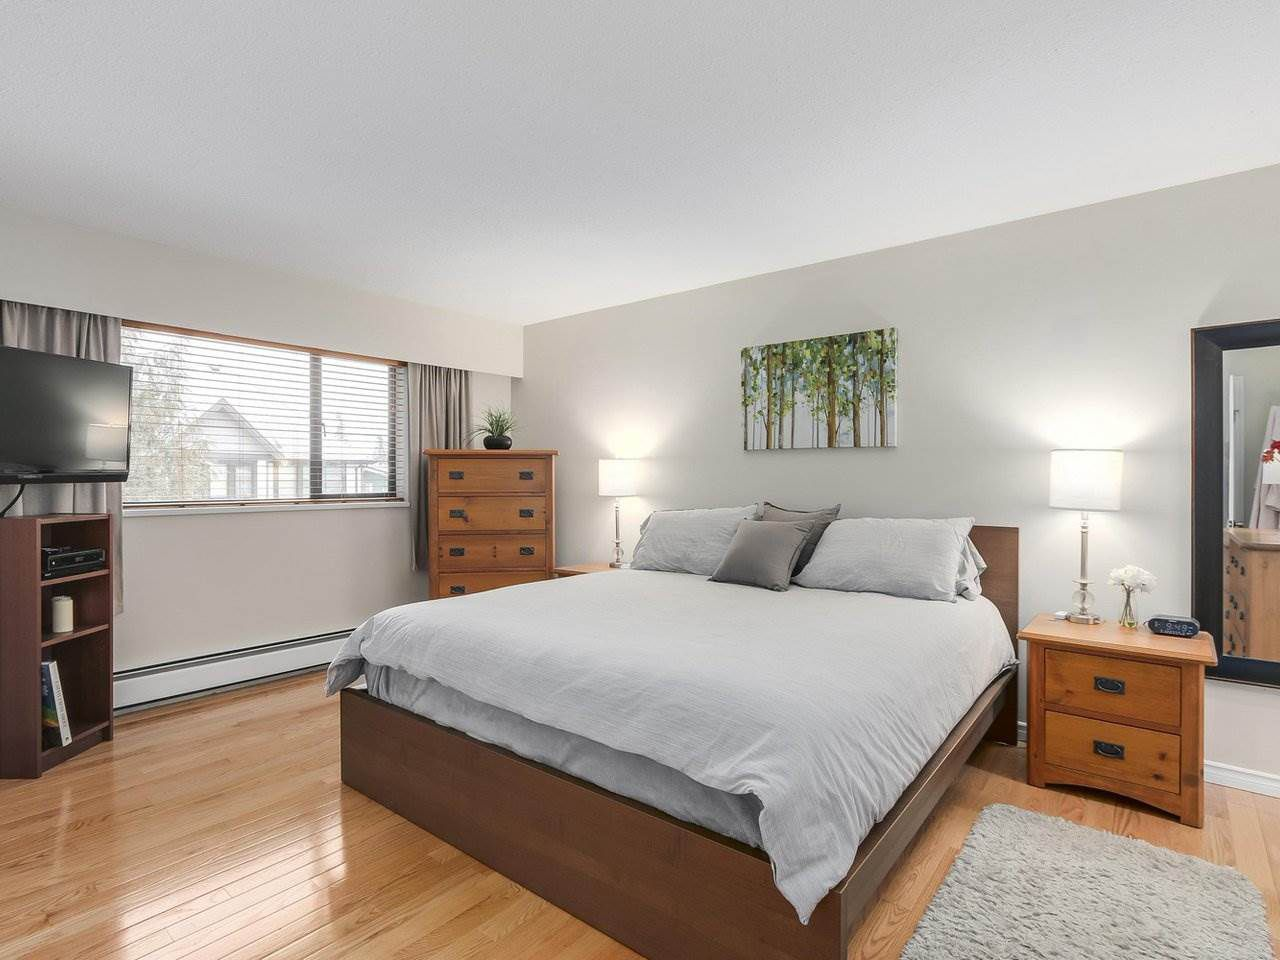 Photo 12: Photos: 887 KELVIN Street in Coquitlam: Harbour Chines House for sale : MLS®# R2240068